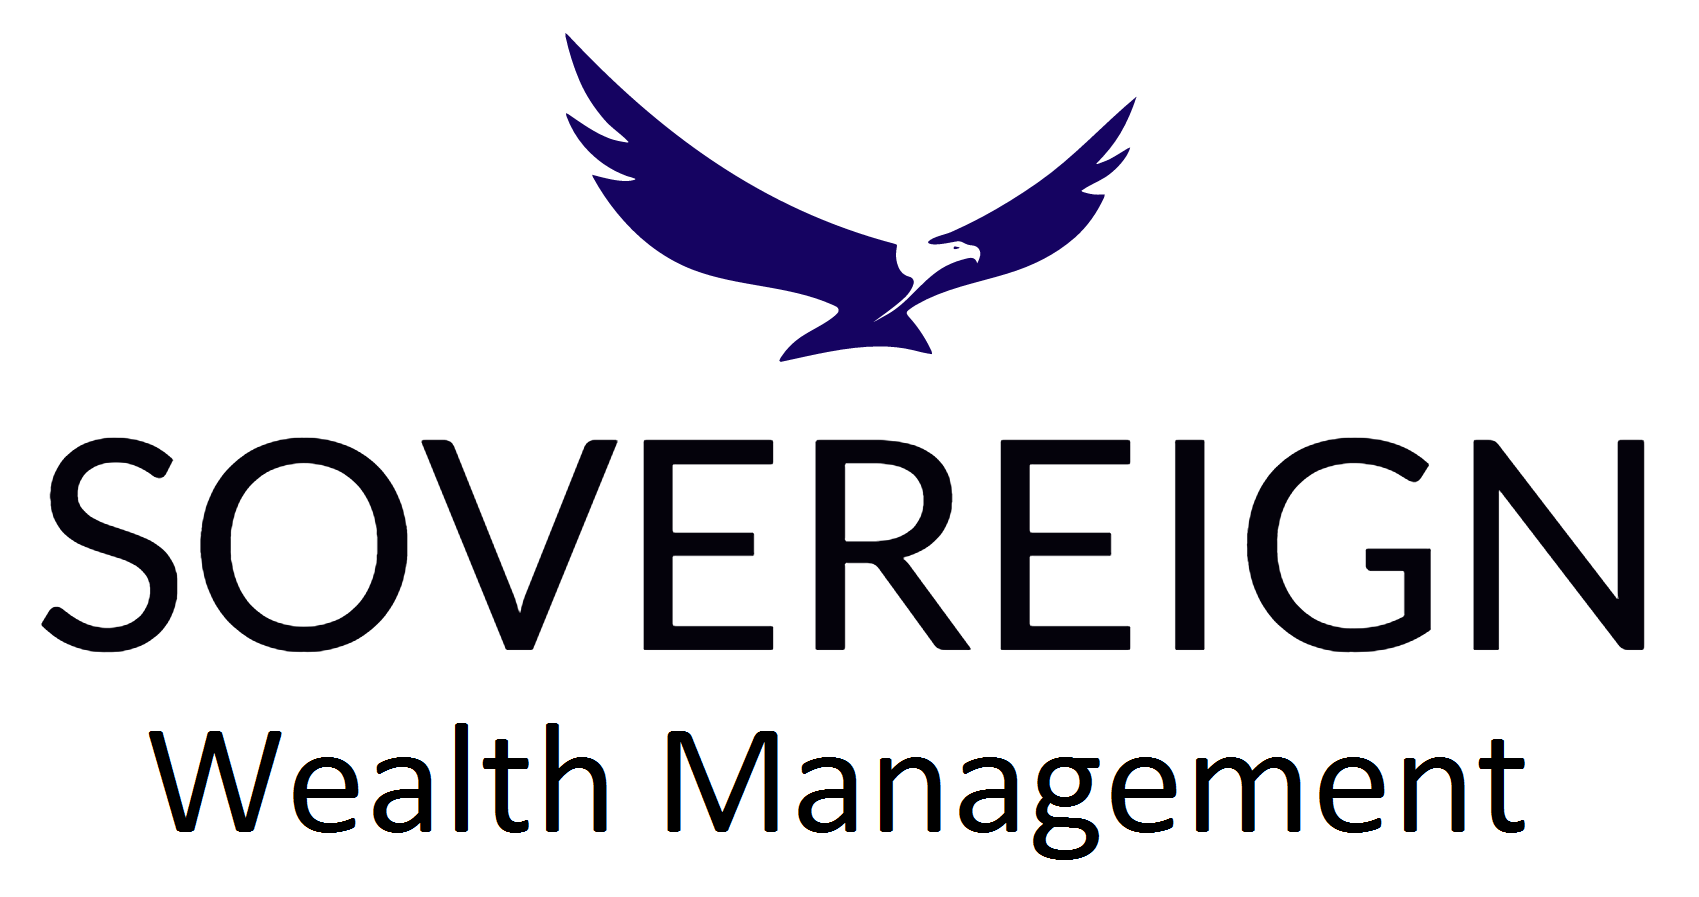 Sovereign Retirement & Wealth Management of Vienna Virginia